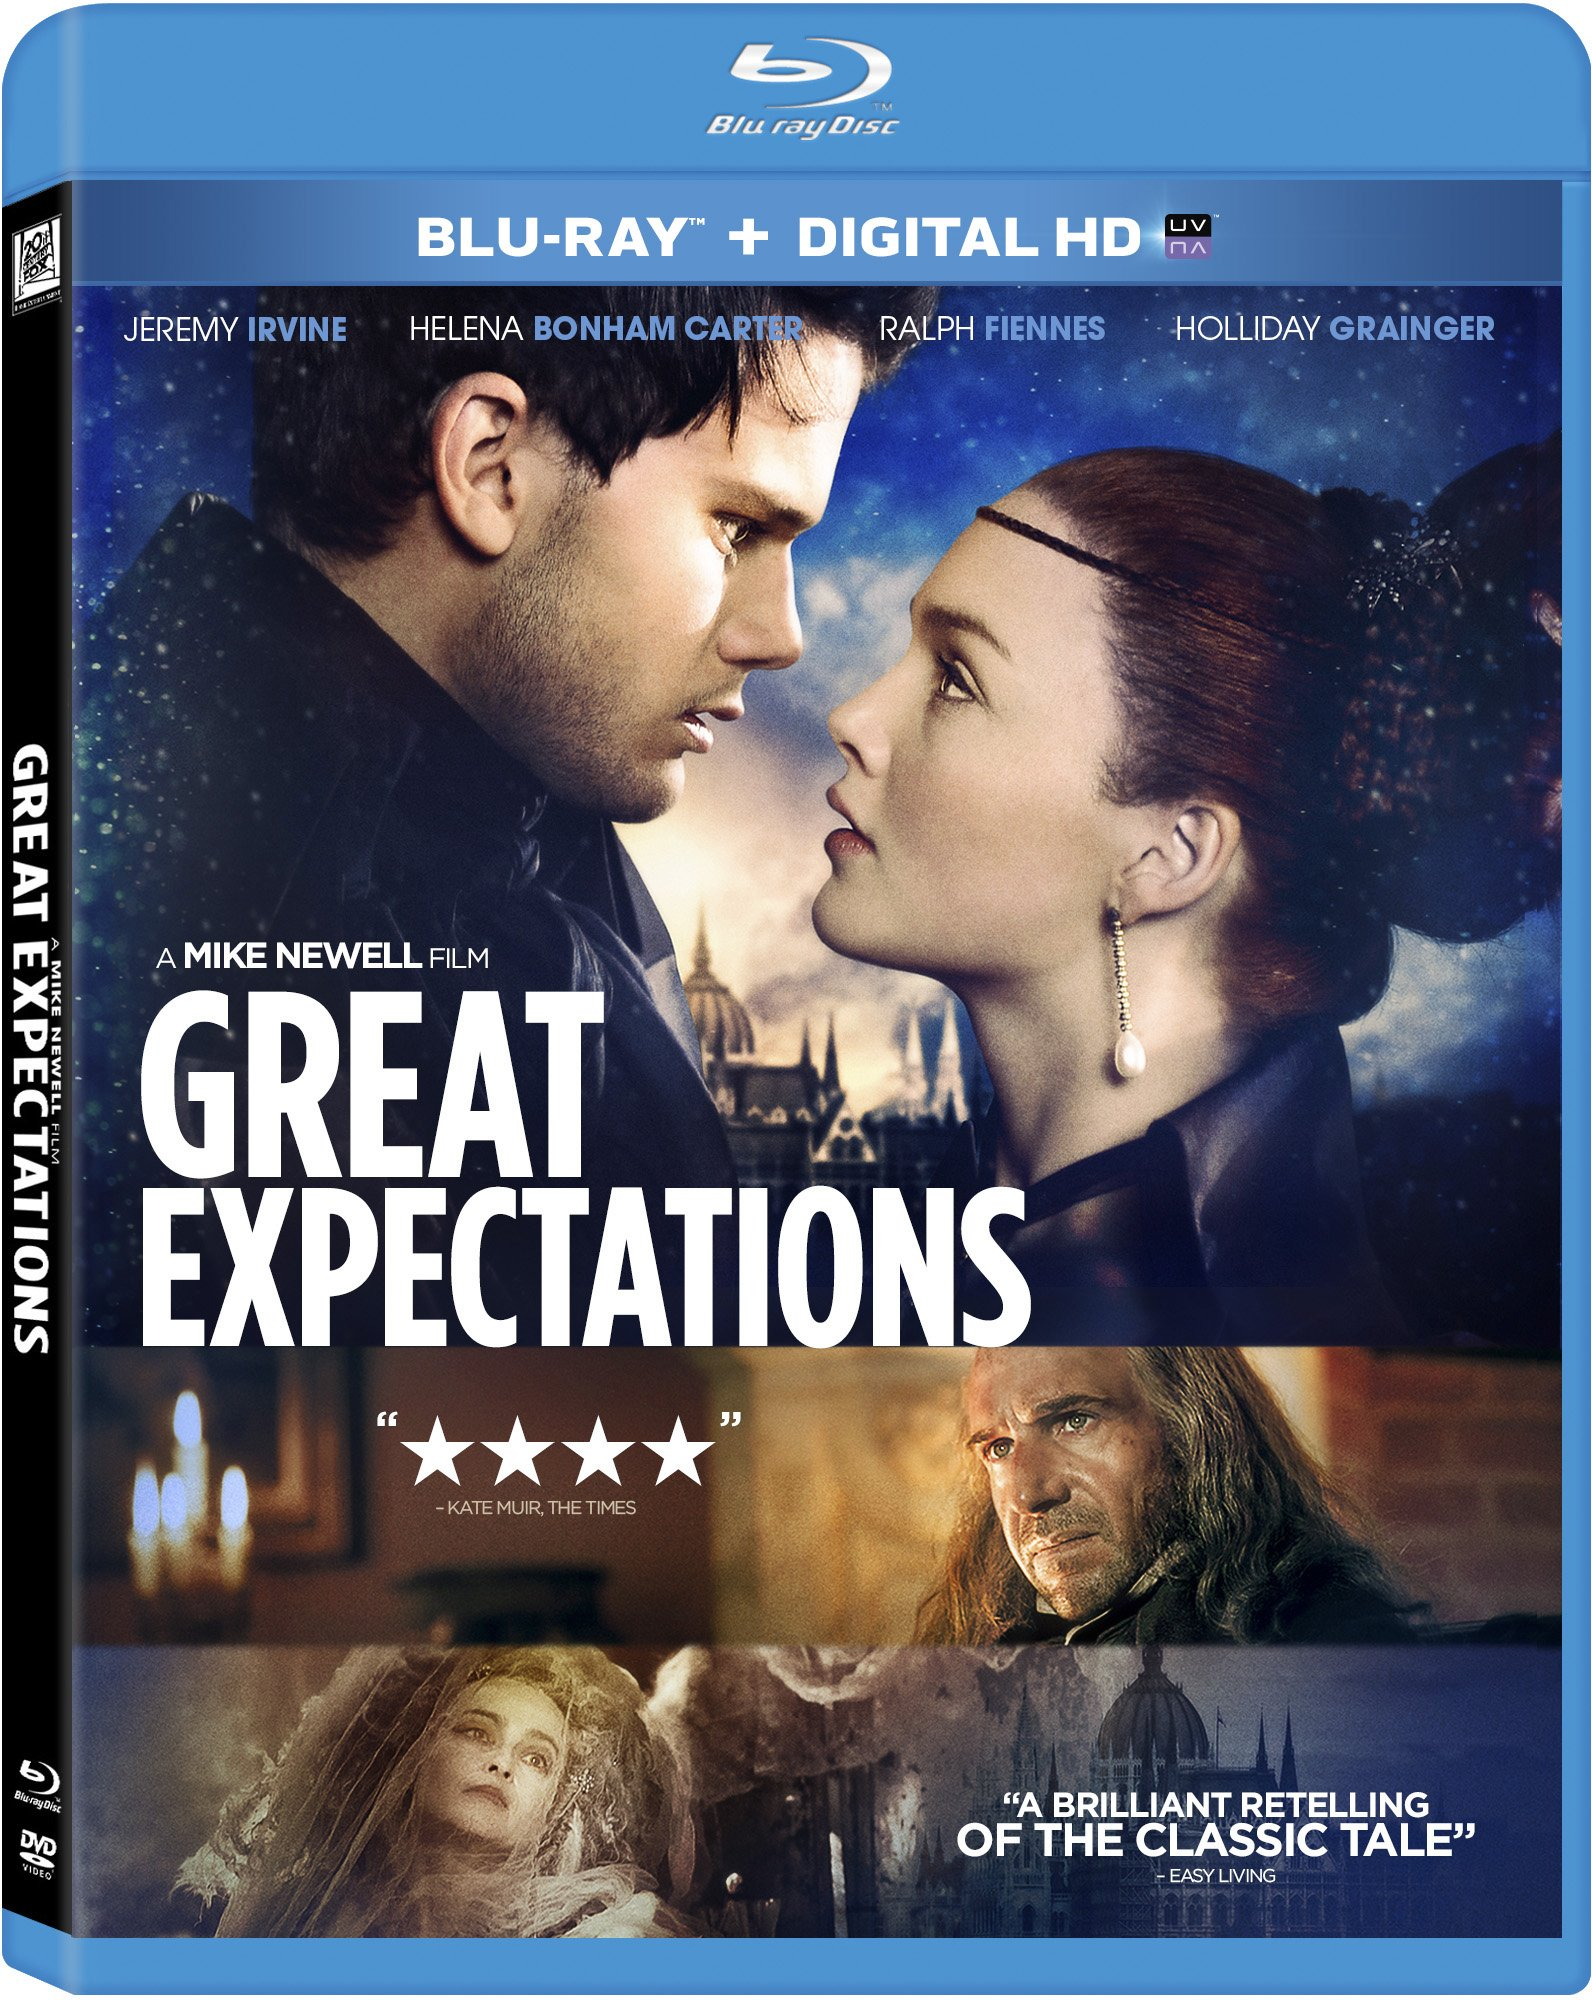 Blu-ray : Great Expectations (, AC-3, Widescreen, Digital Theater System)